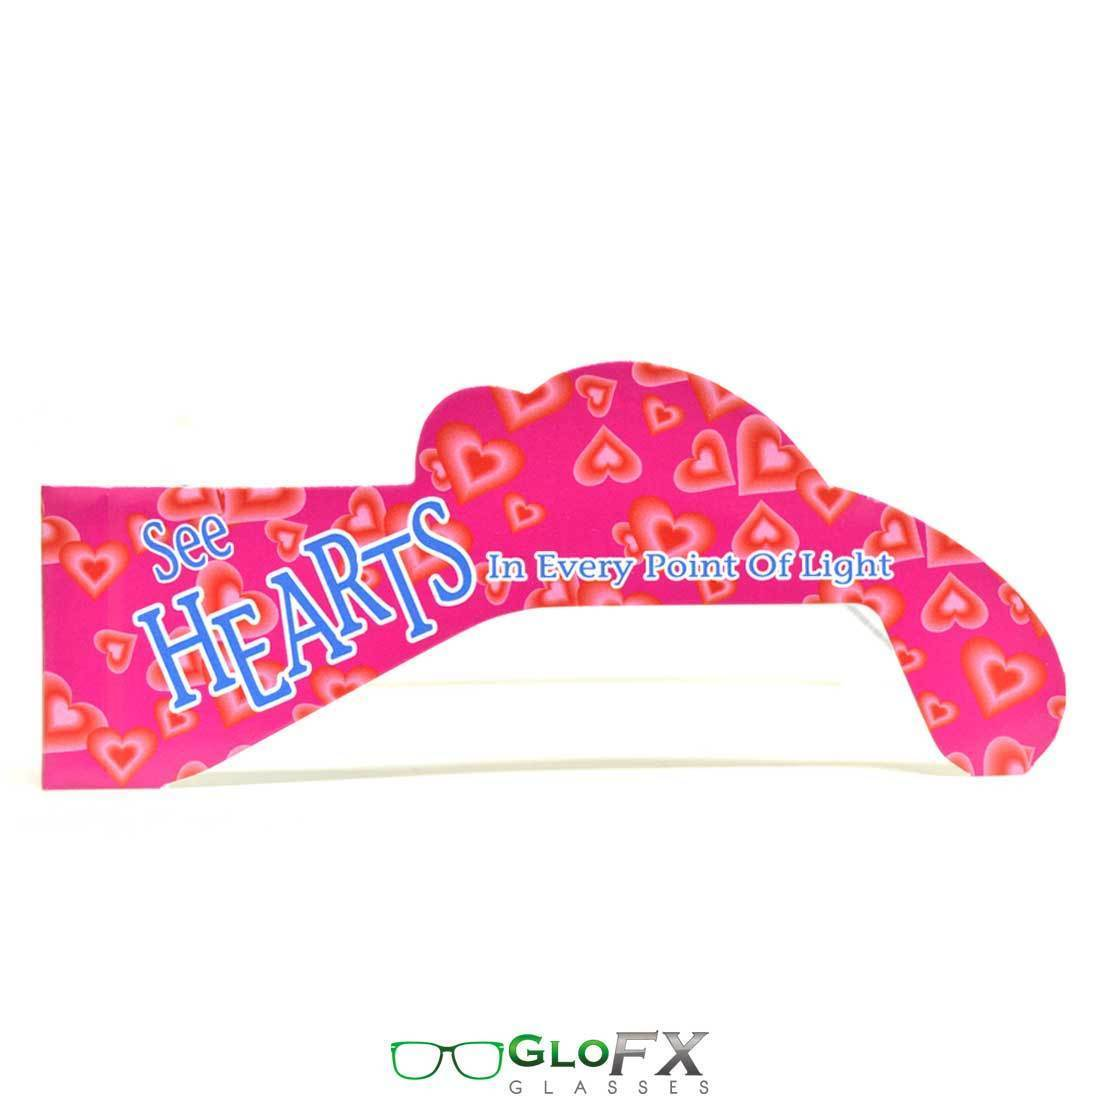 5 Pack GloFX Heart Effect Paper Cardboard Diffraction Glasses Bright Heart